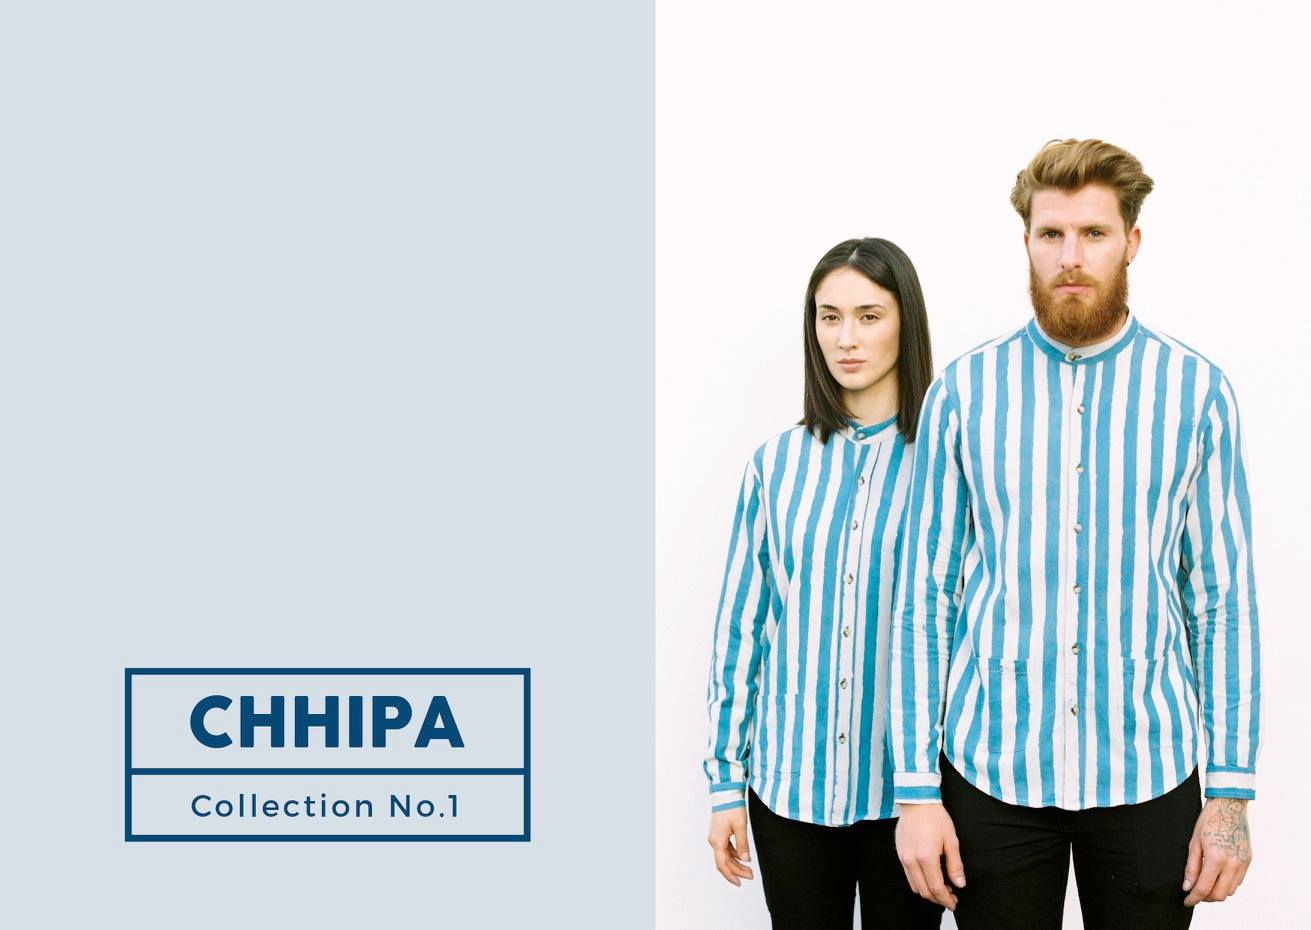 Chhipa Collection